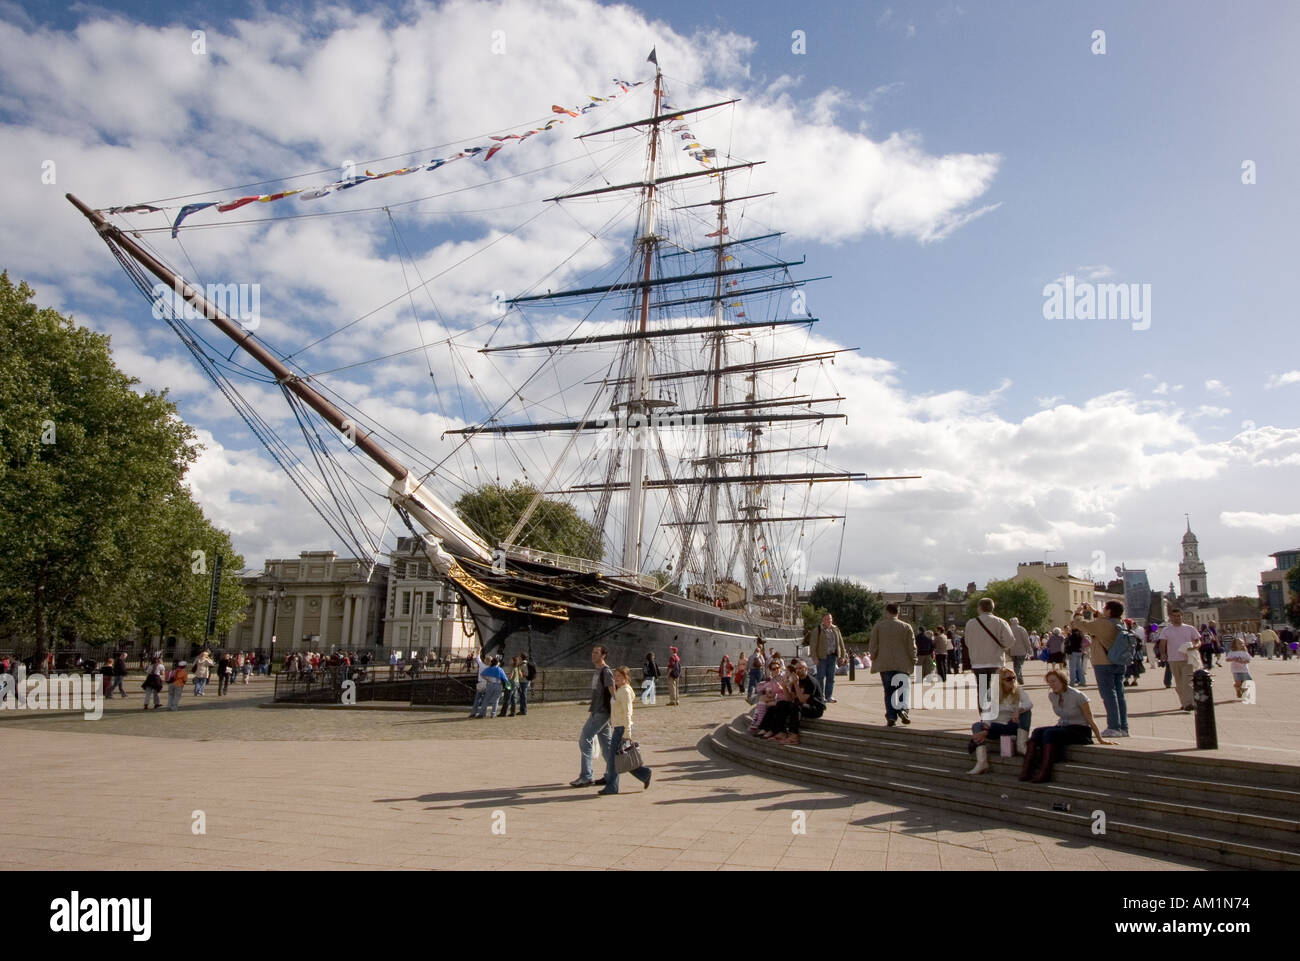 The Cutty Sark tea clipper in permanent dock at Greenwich South London UK - Stock Image